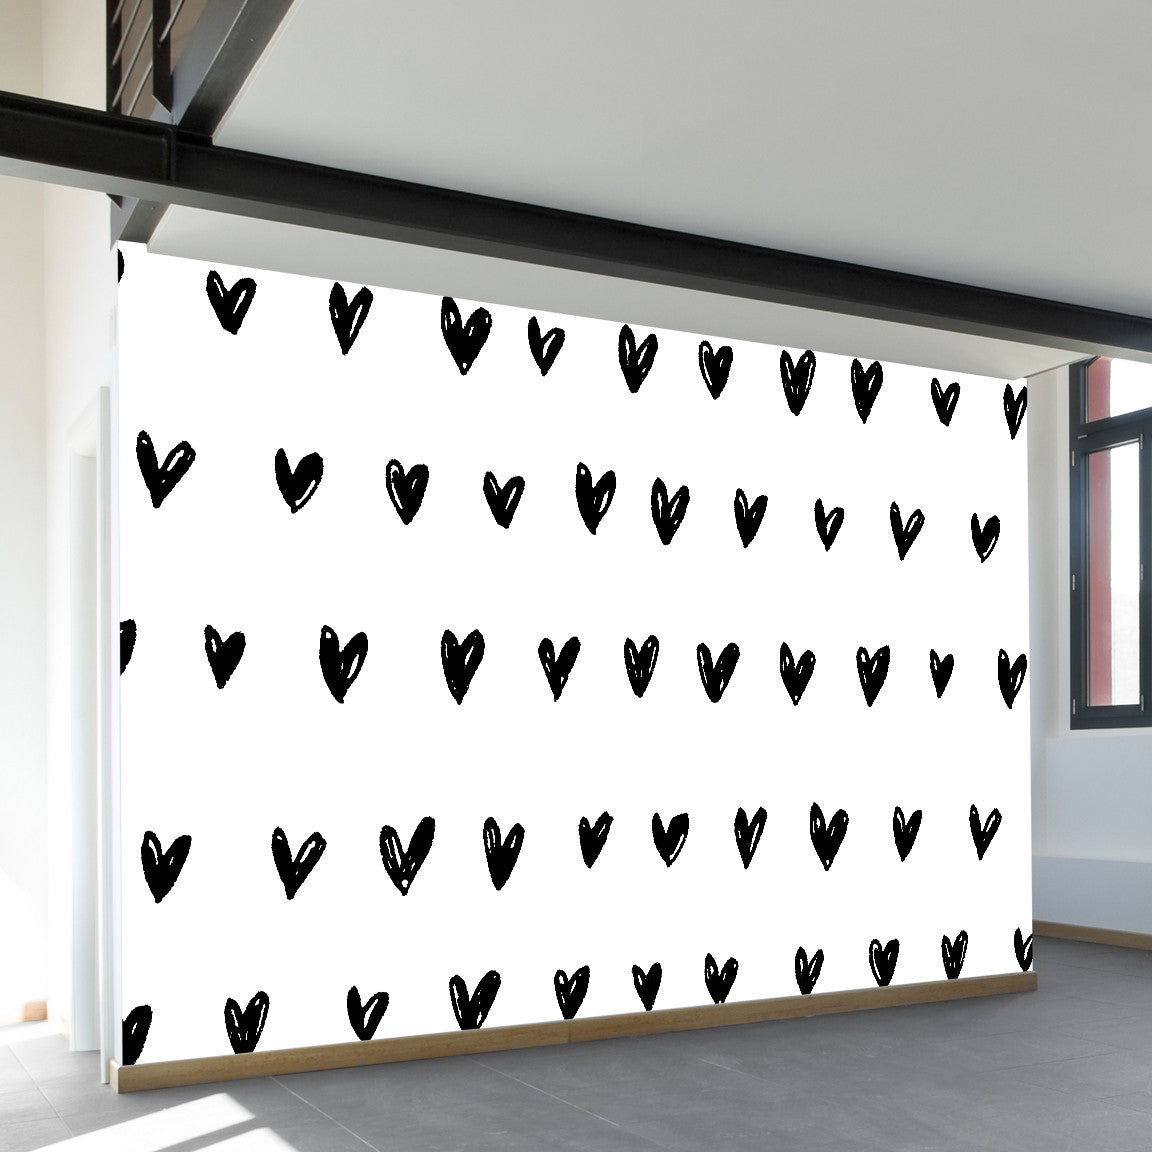 Inked Hearts Wall Mural by Walls Need Loveᄄ